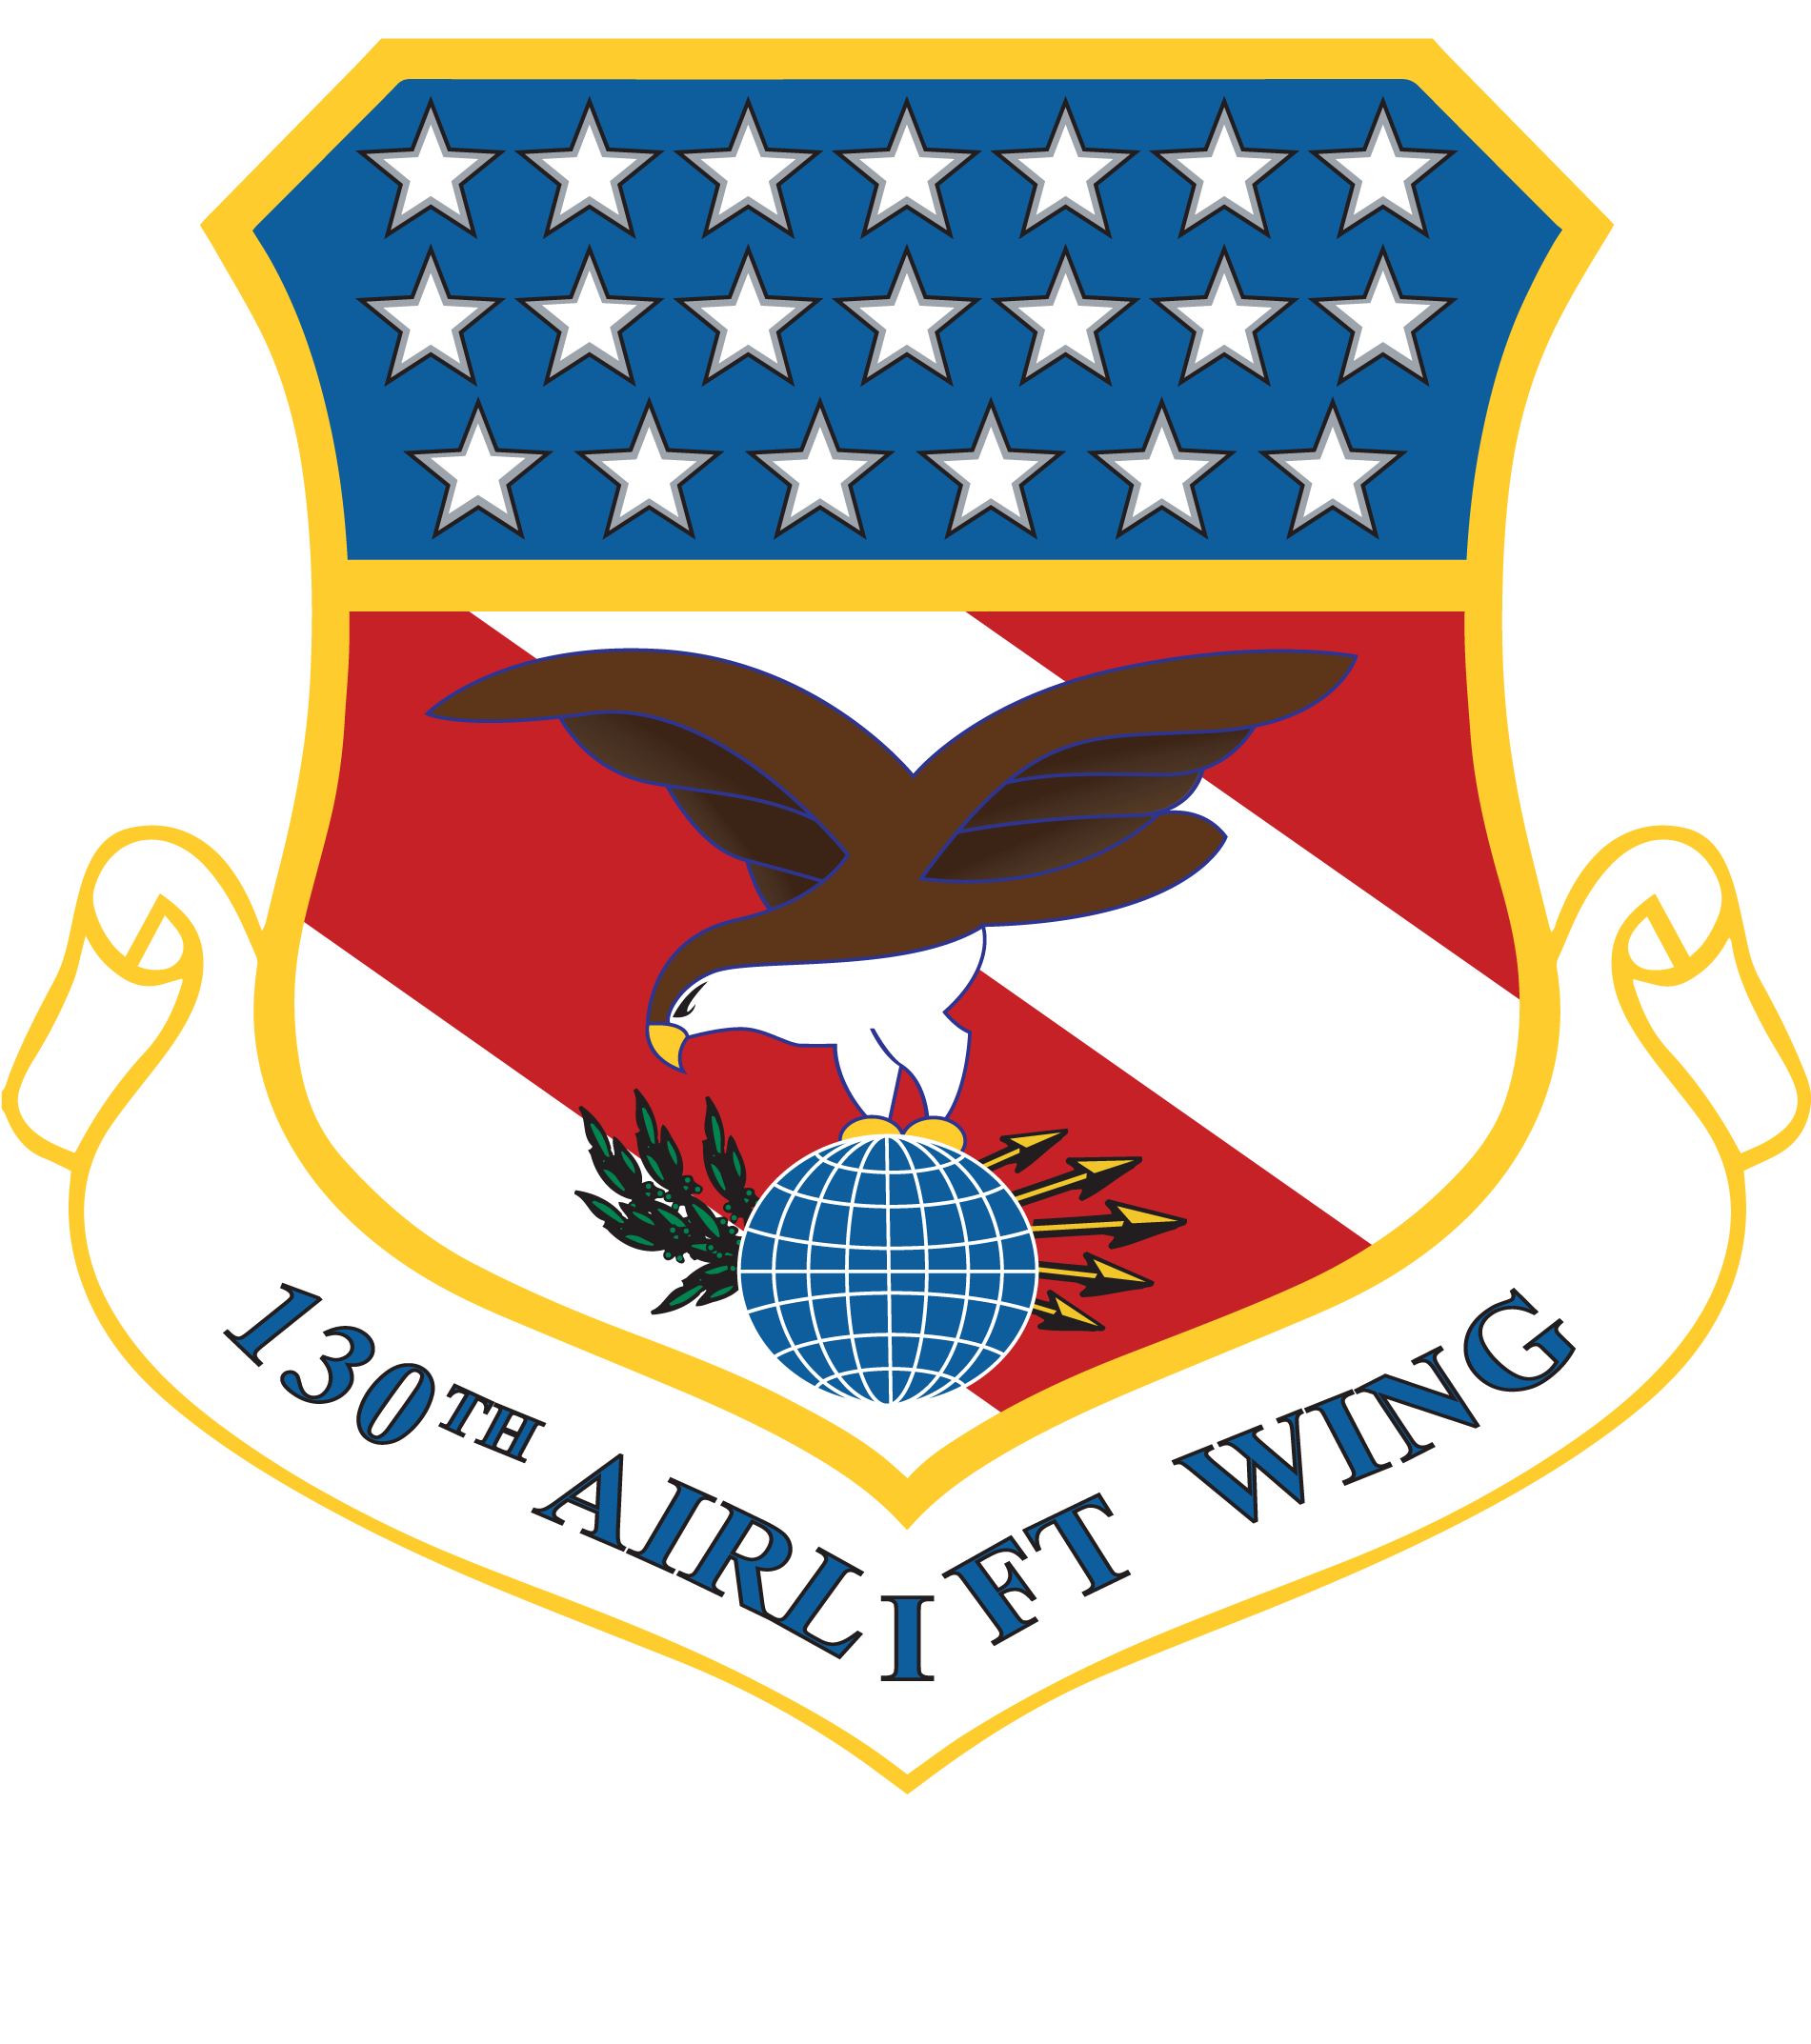 130th Airlift Wing